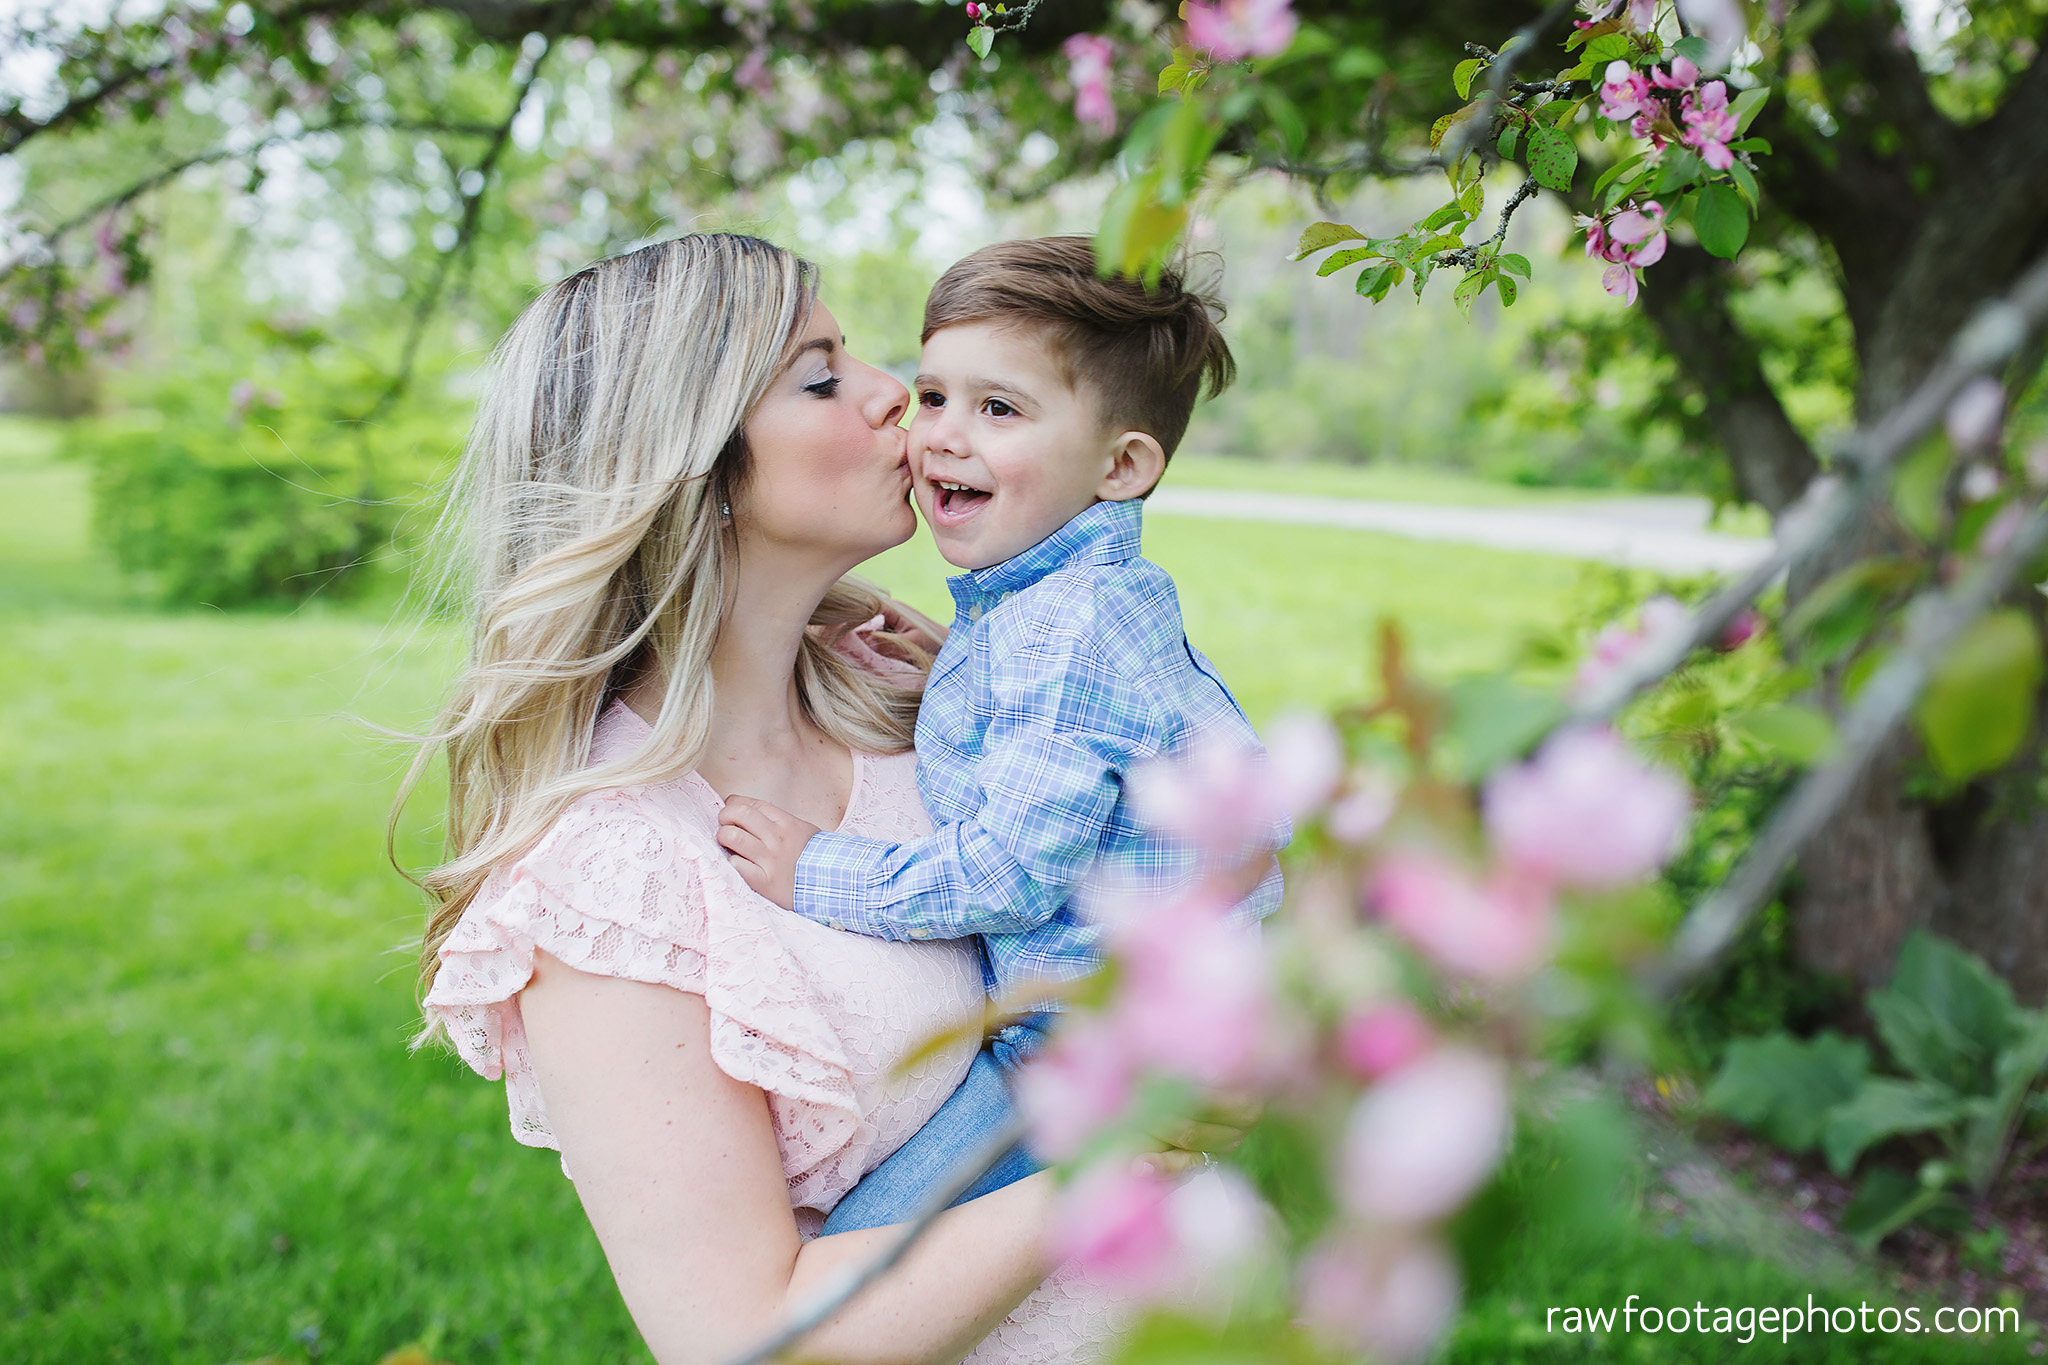 london_ontario_family_photography-lifestyle_photography-maternity_photos-raw_footage_photography-best_of_2018096.jpg